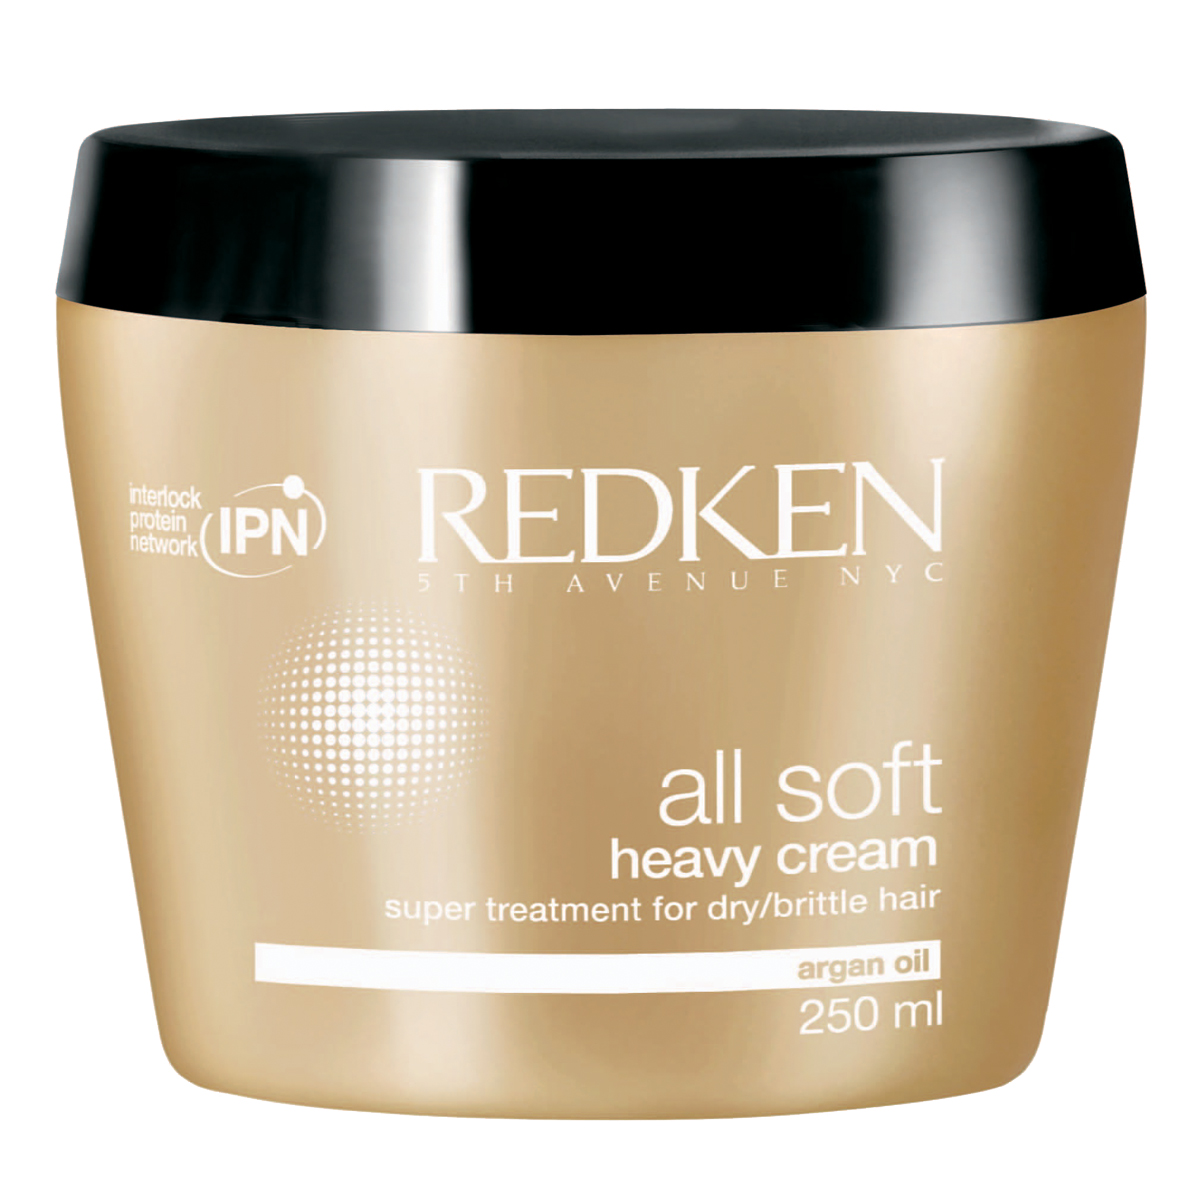 REDKEN All Soft Heavy Cream 250 ml P0426900